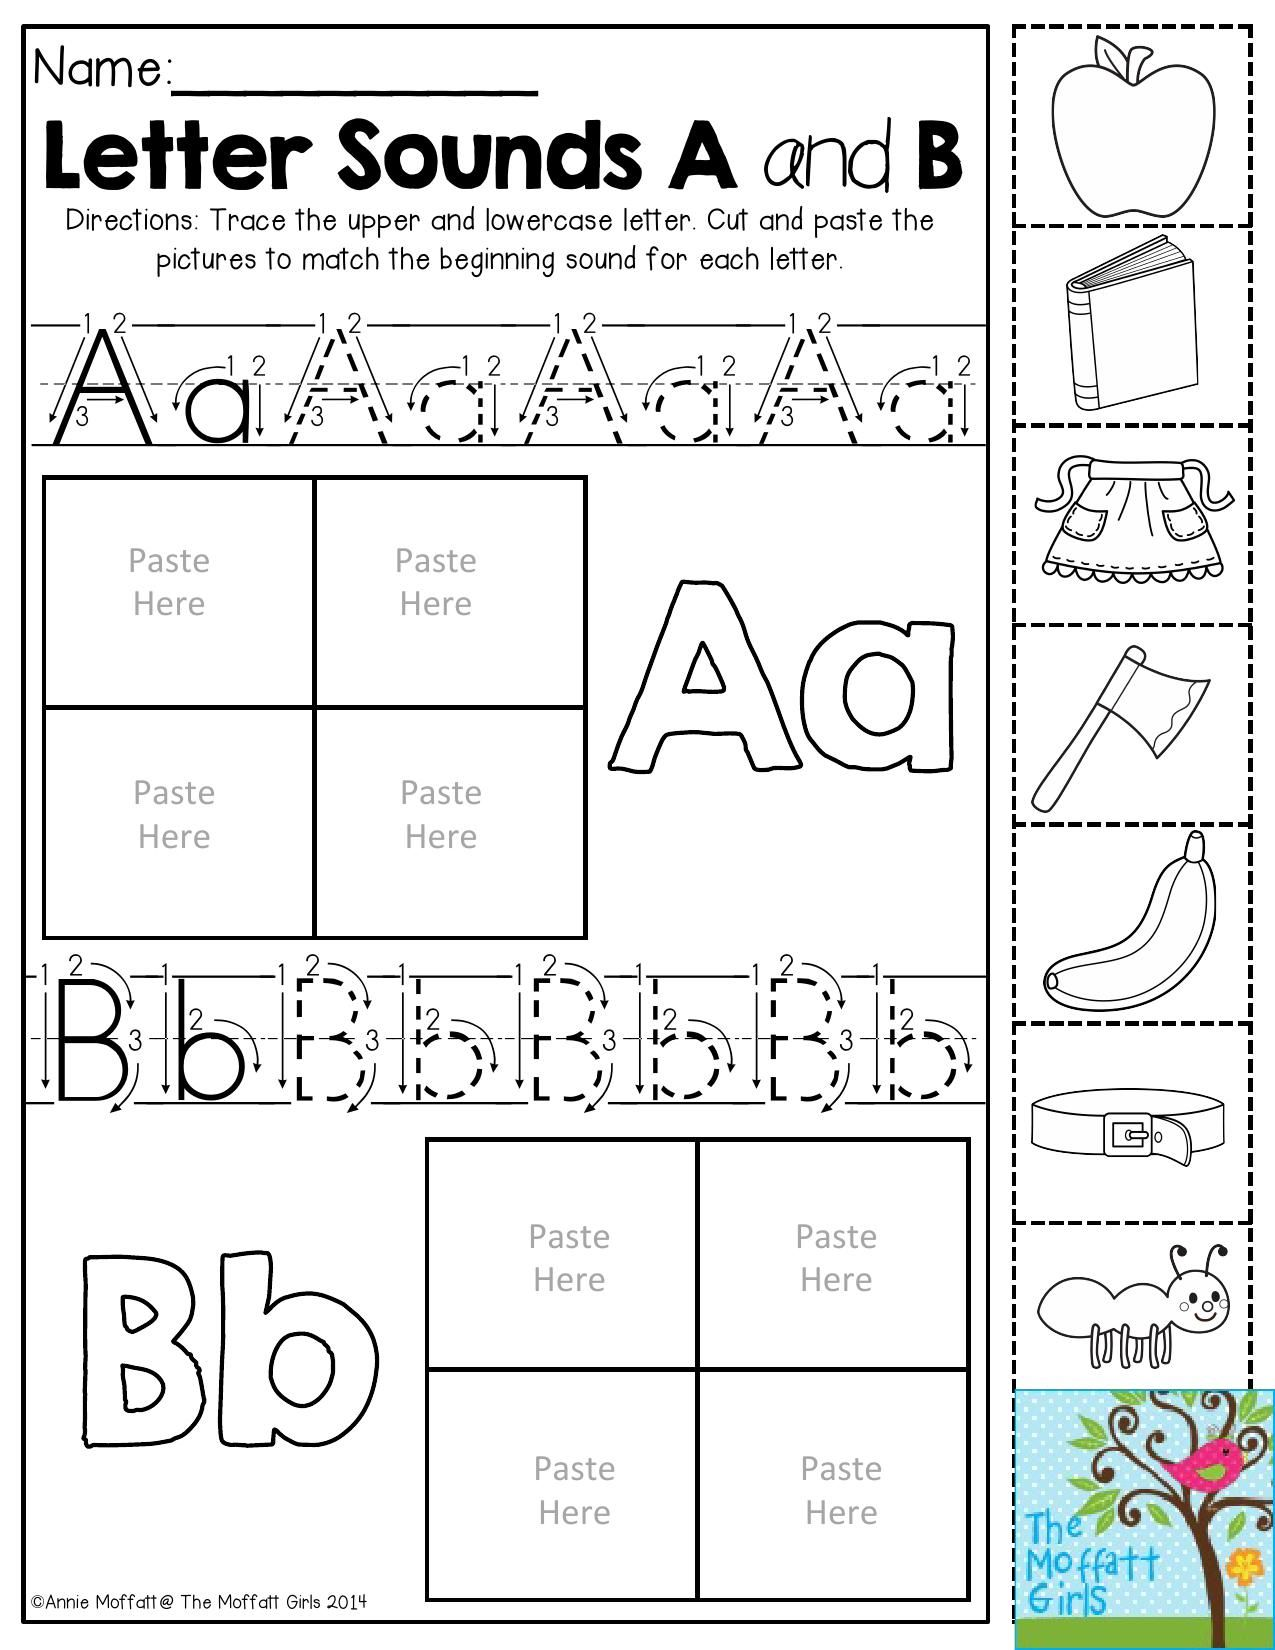 Letter Sounds- Trace the letters. Then cut and paste the pictures to ...